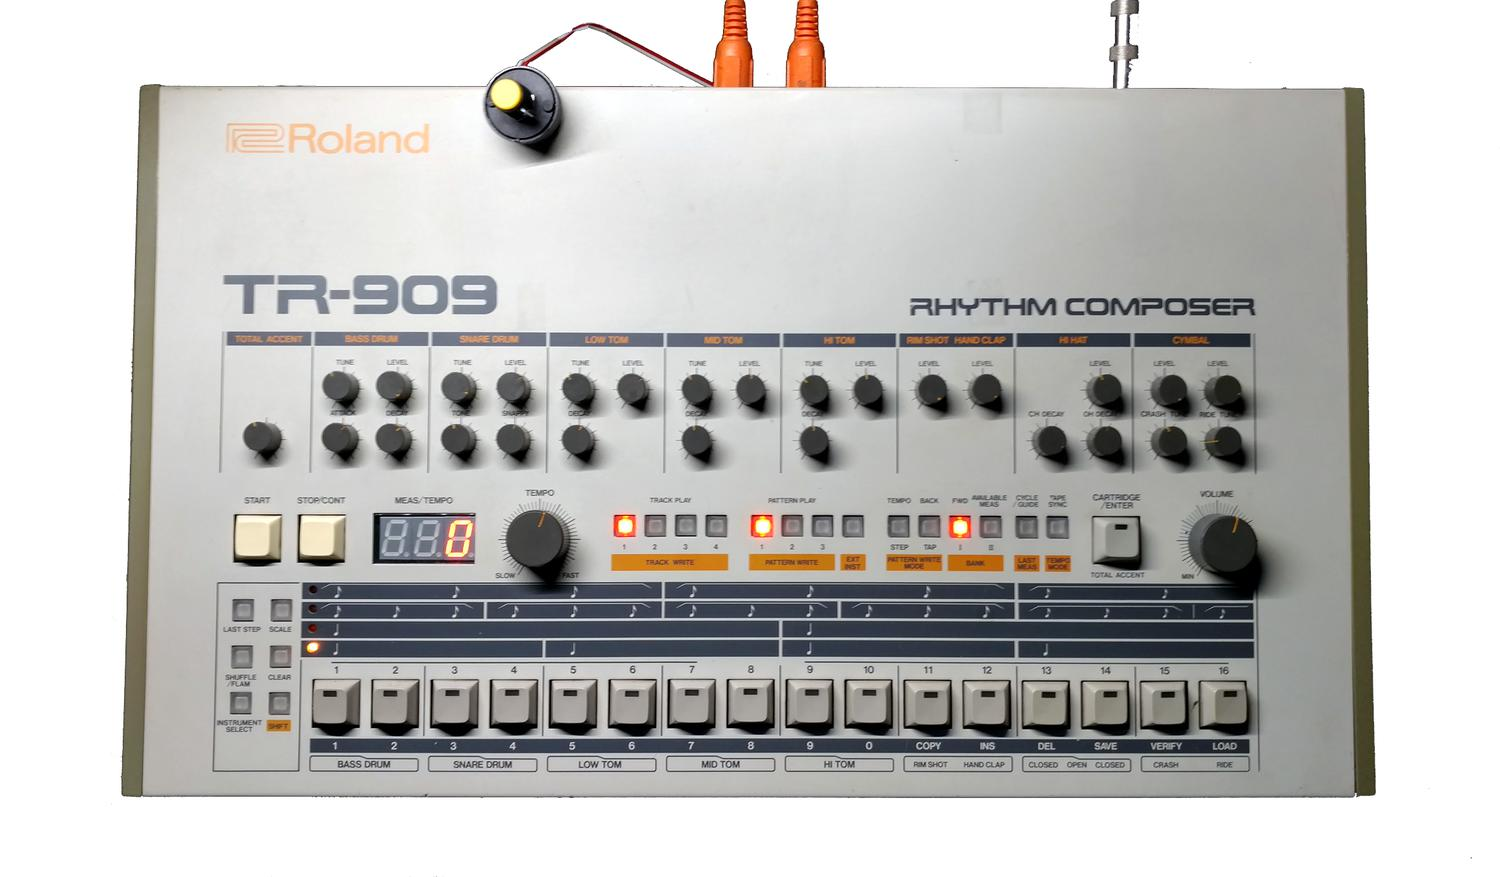 Roland Tr 909 Digital Mods Memory Midi Os Led Upgrades Crowd Part Of Old Vintage Analog Printed Circuit Board With Electronic Supply